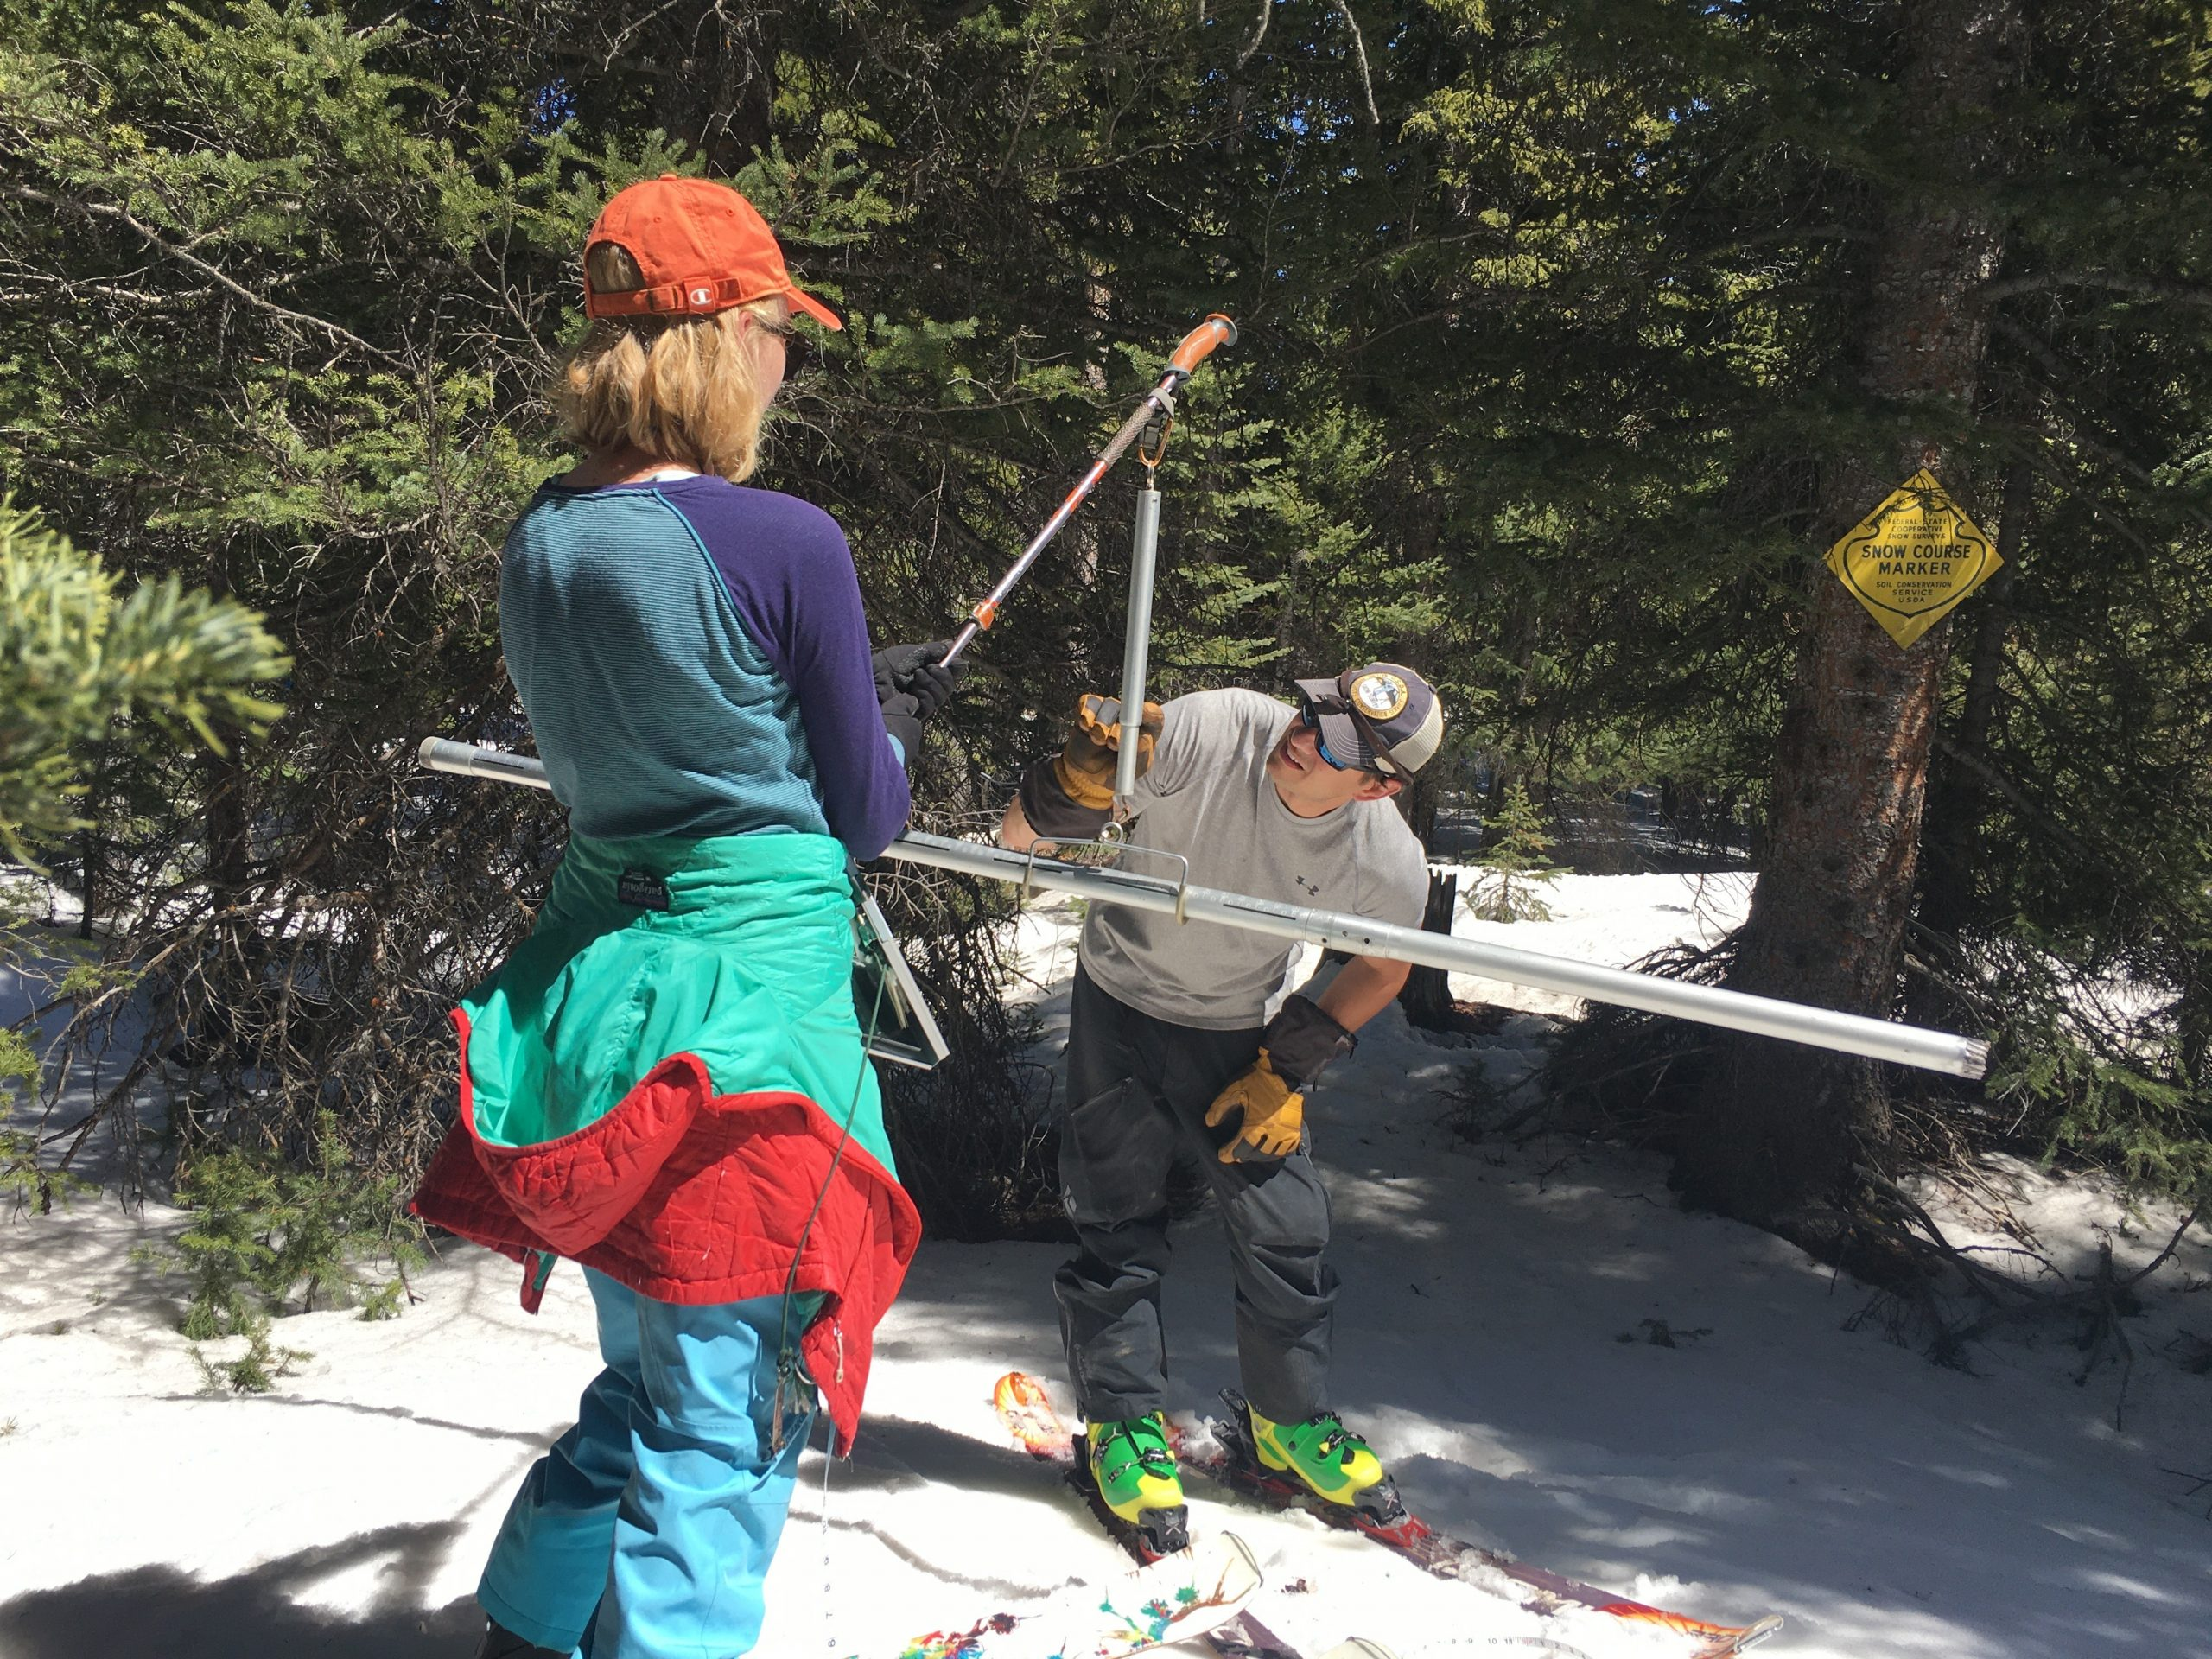 Colorado Snow Survey supervisor Brian Domonkos and NRCS civil engineer Madison Gutekunst weigh the snow to know how much moisture it holds on April 30, 2021.